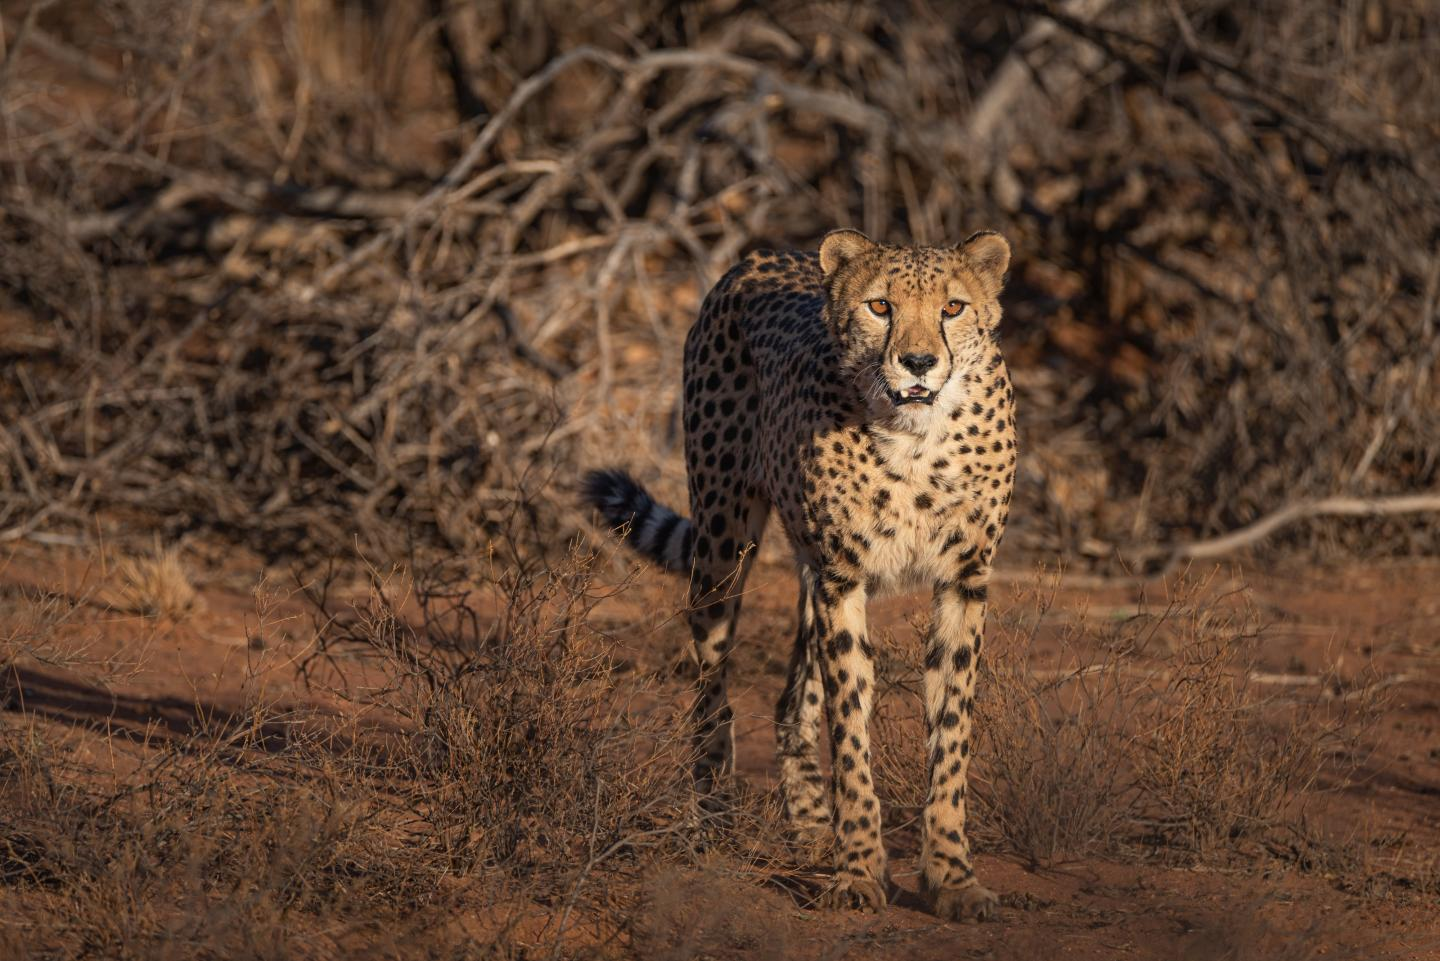 Cheetah in central Namibia